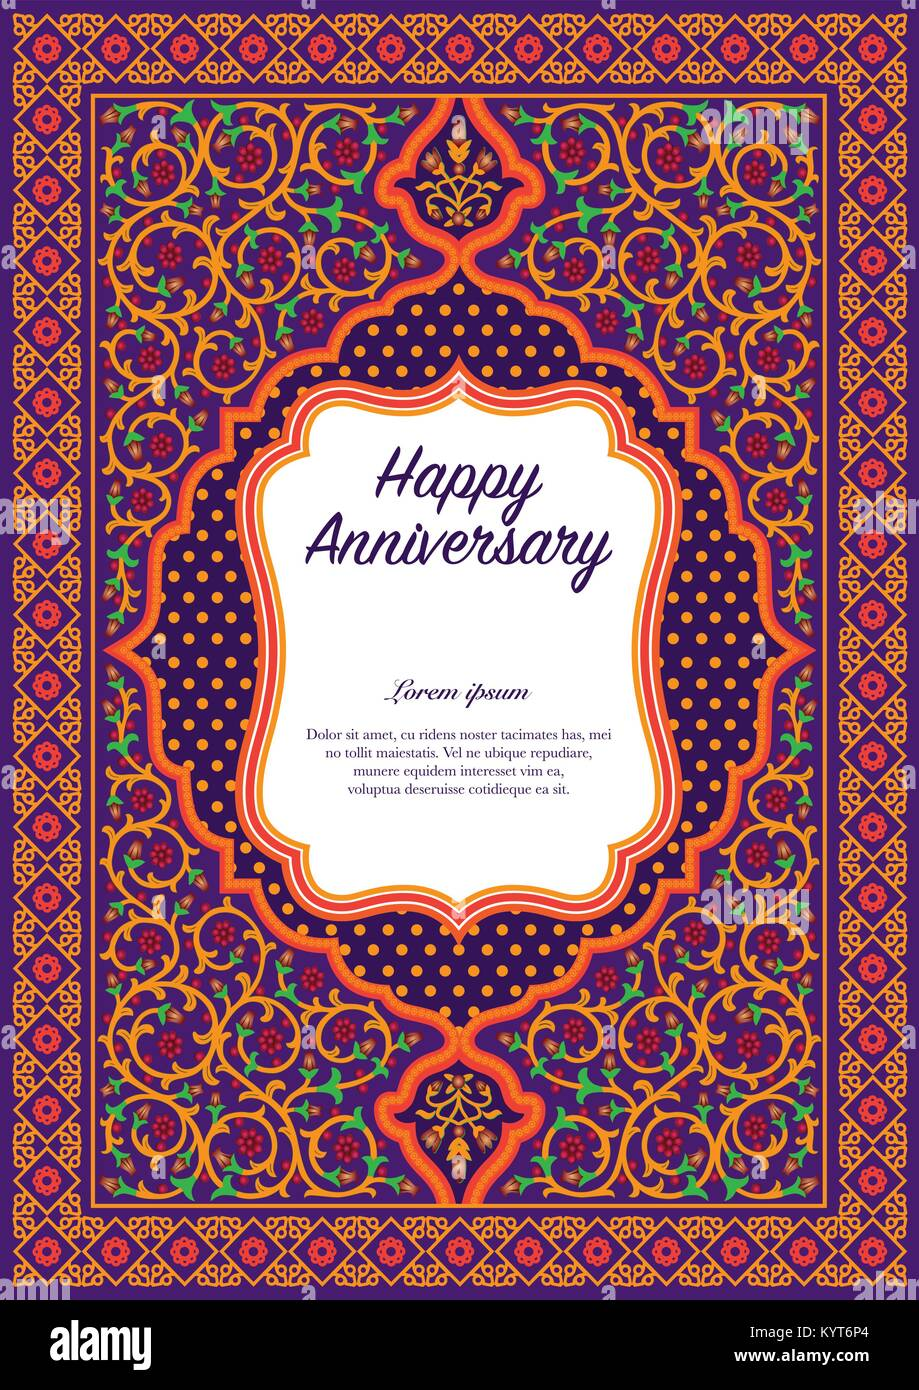 Islamic Book Cover Design Vector : Islamic art stock vector images alamy